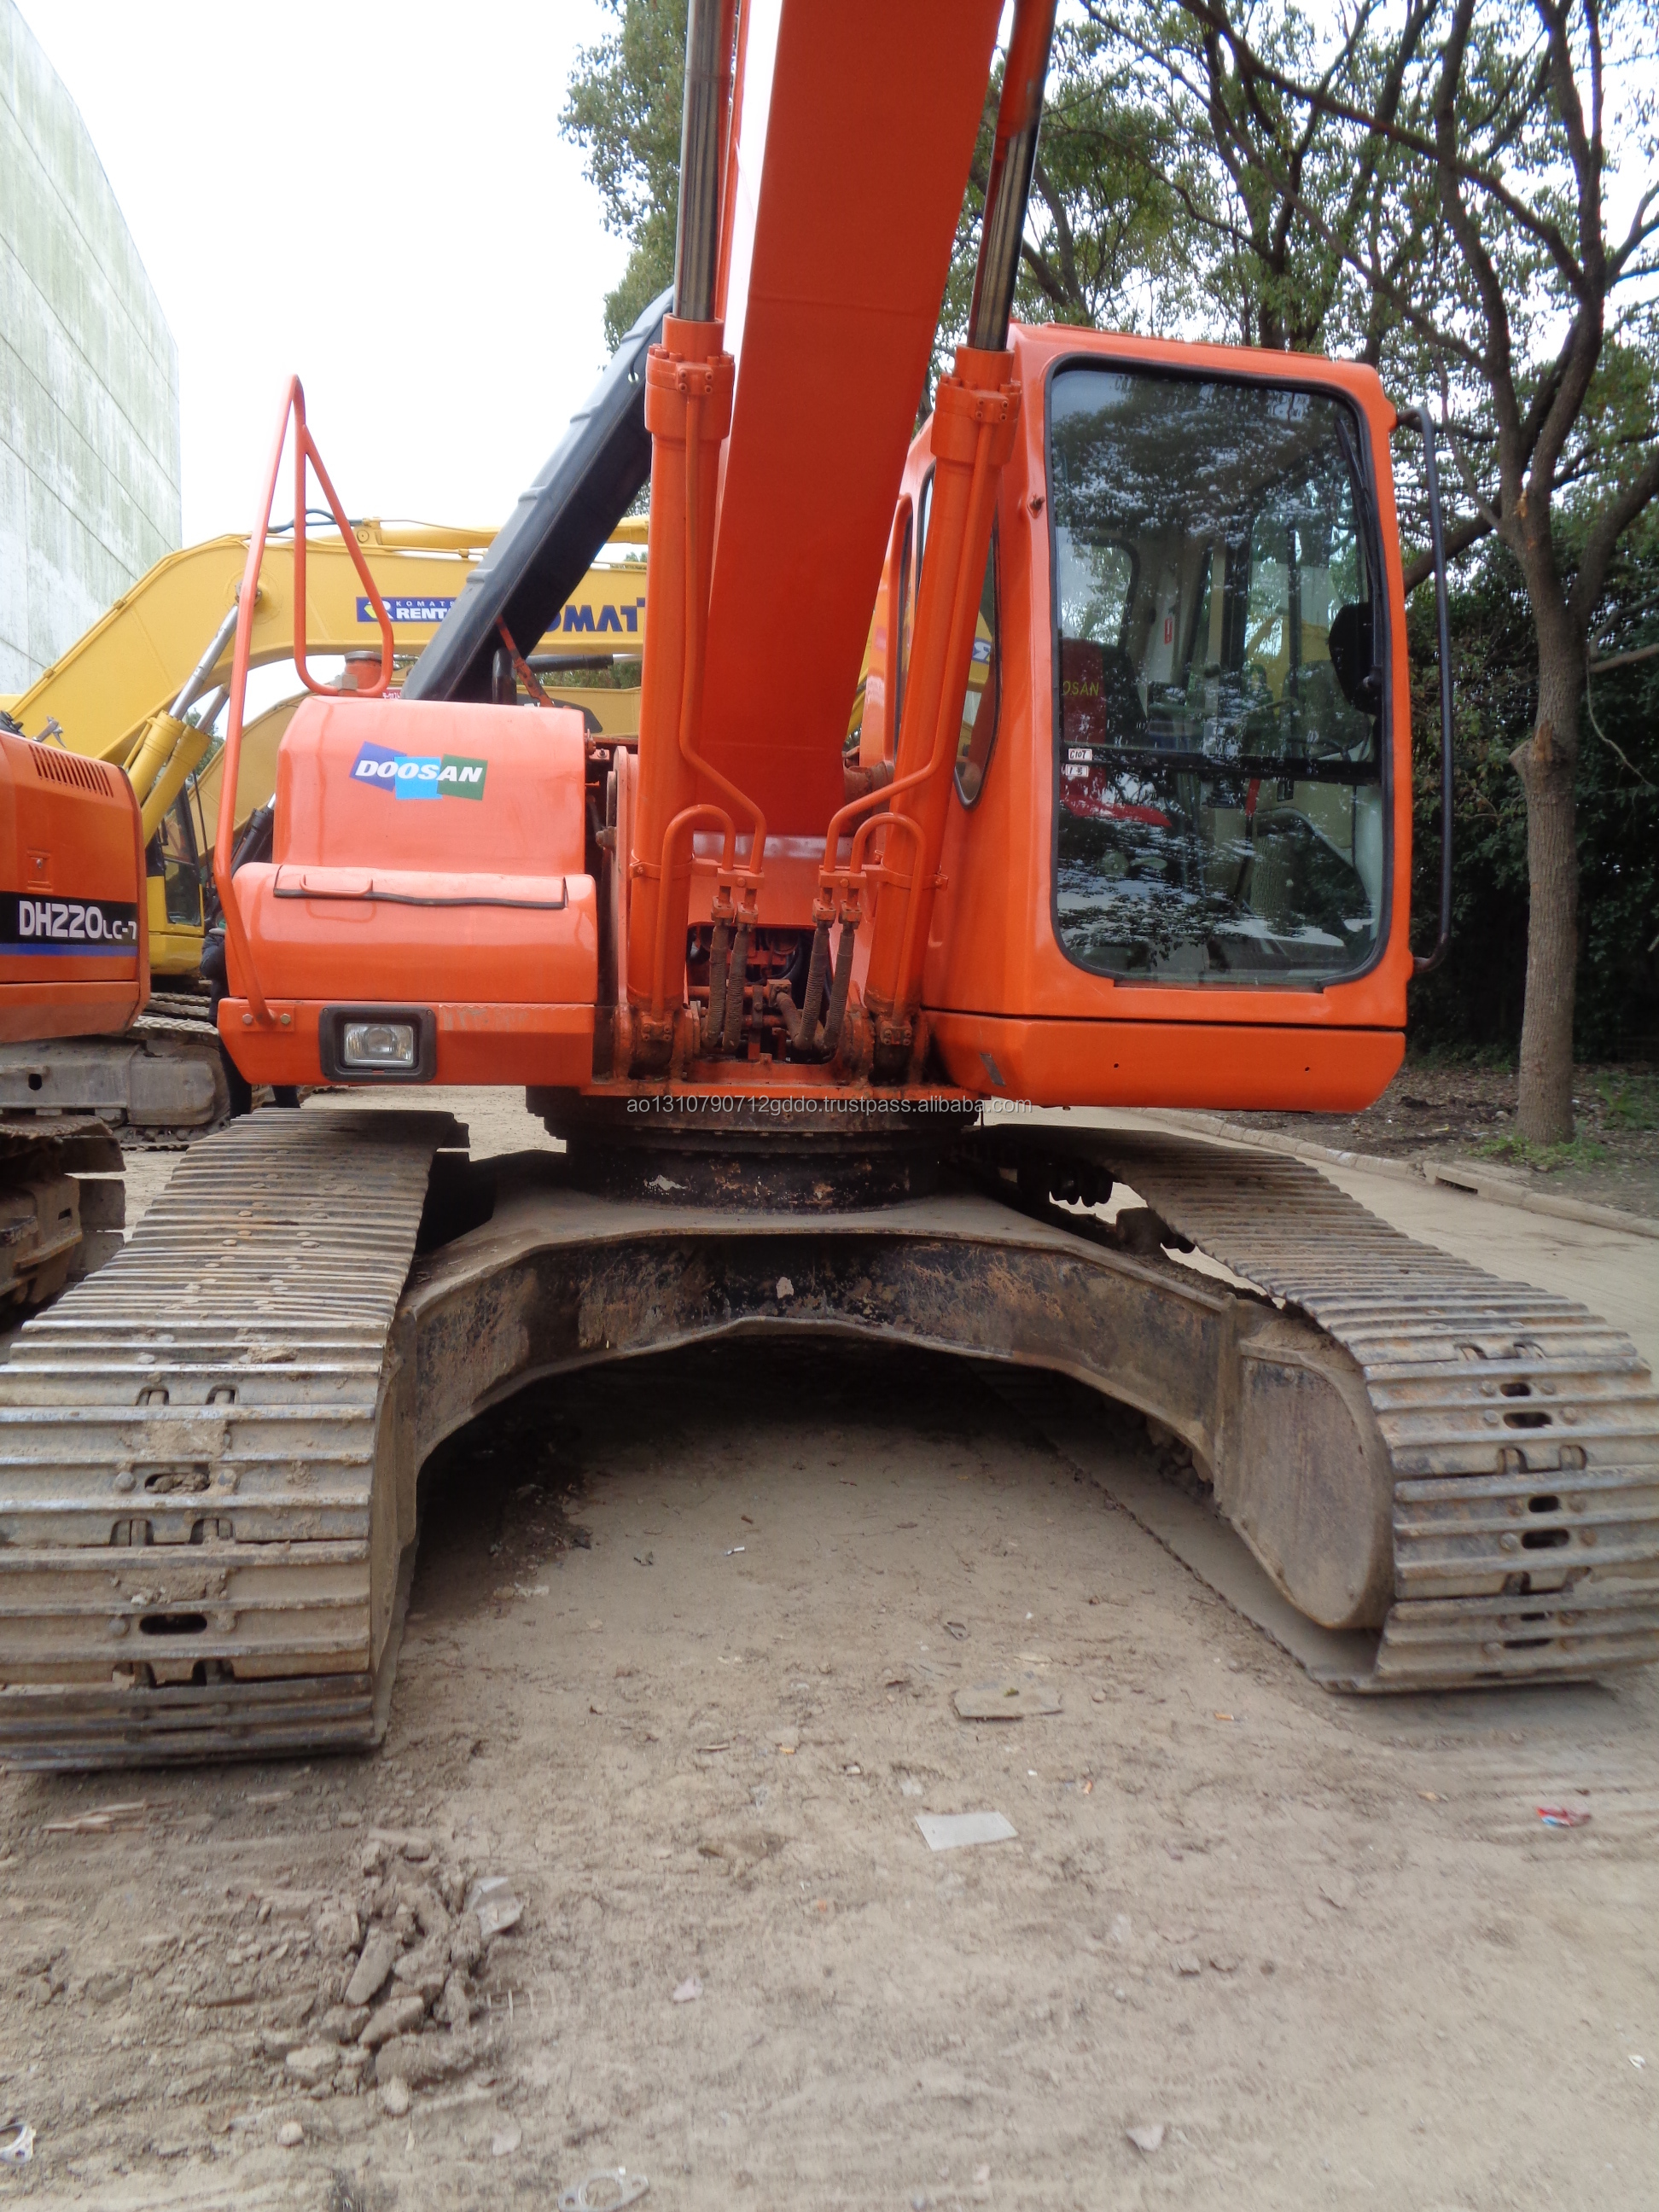 Used Doosan 220-7 Tracked Excavator For Sale/Used Doosan 220-7 Excavator in Good Condition